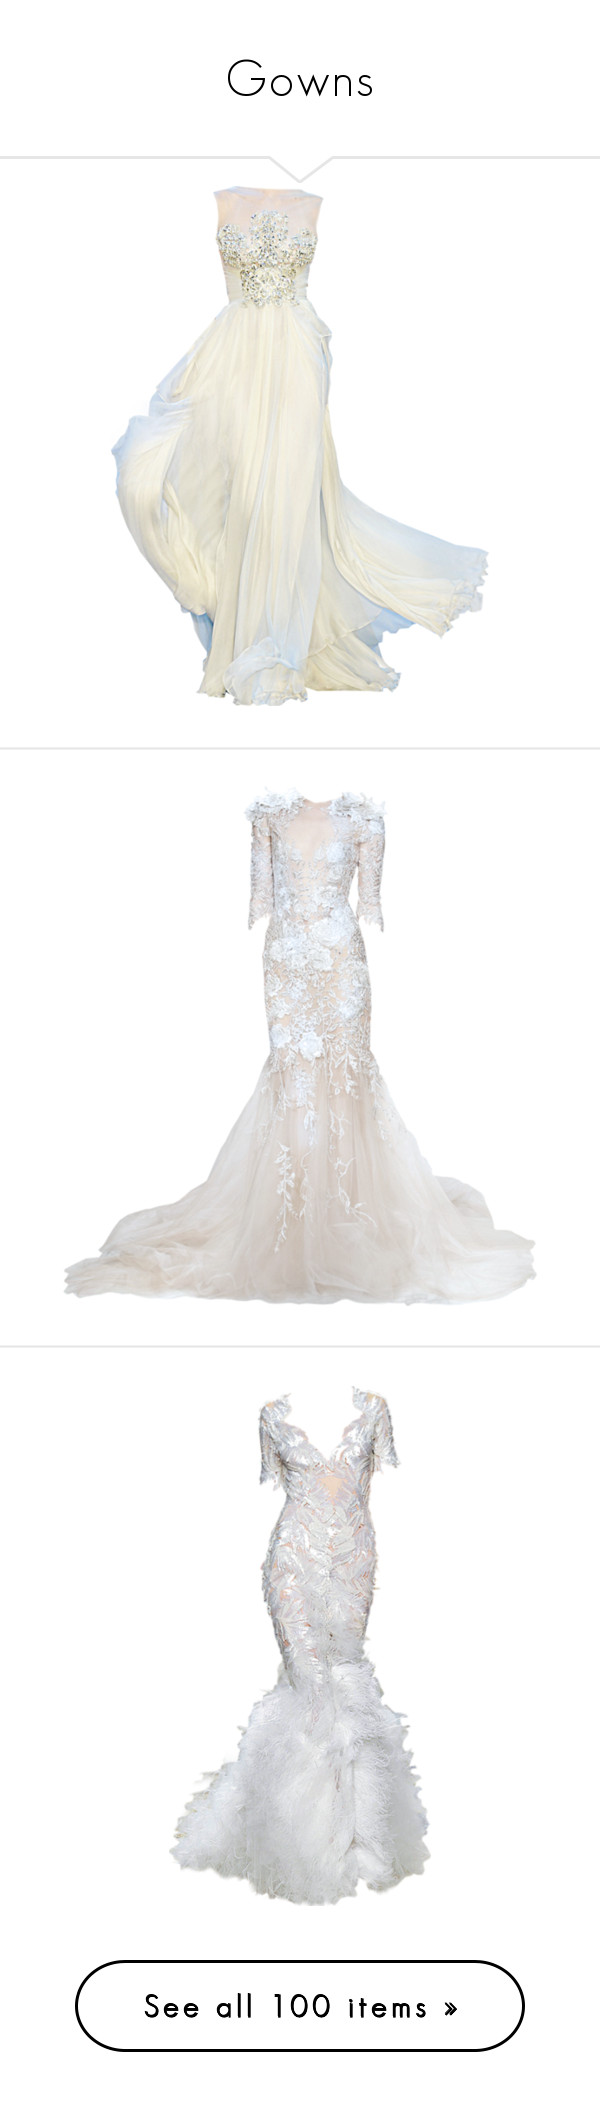 """""""Gowns"""" by dianabanana ❤ liked on Polyvore featuring dresses, gowns, long dresses, vestidos, white ball gowns, long white dress, elie saab gowns, elie saab dresses, wedding and marchesa dresses"""